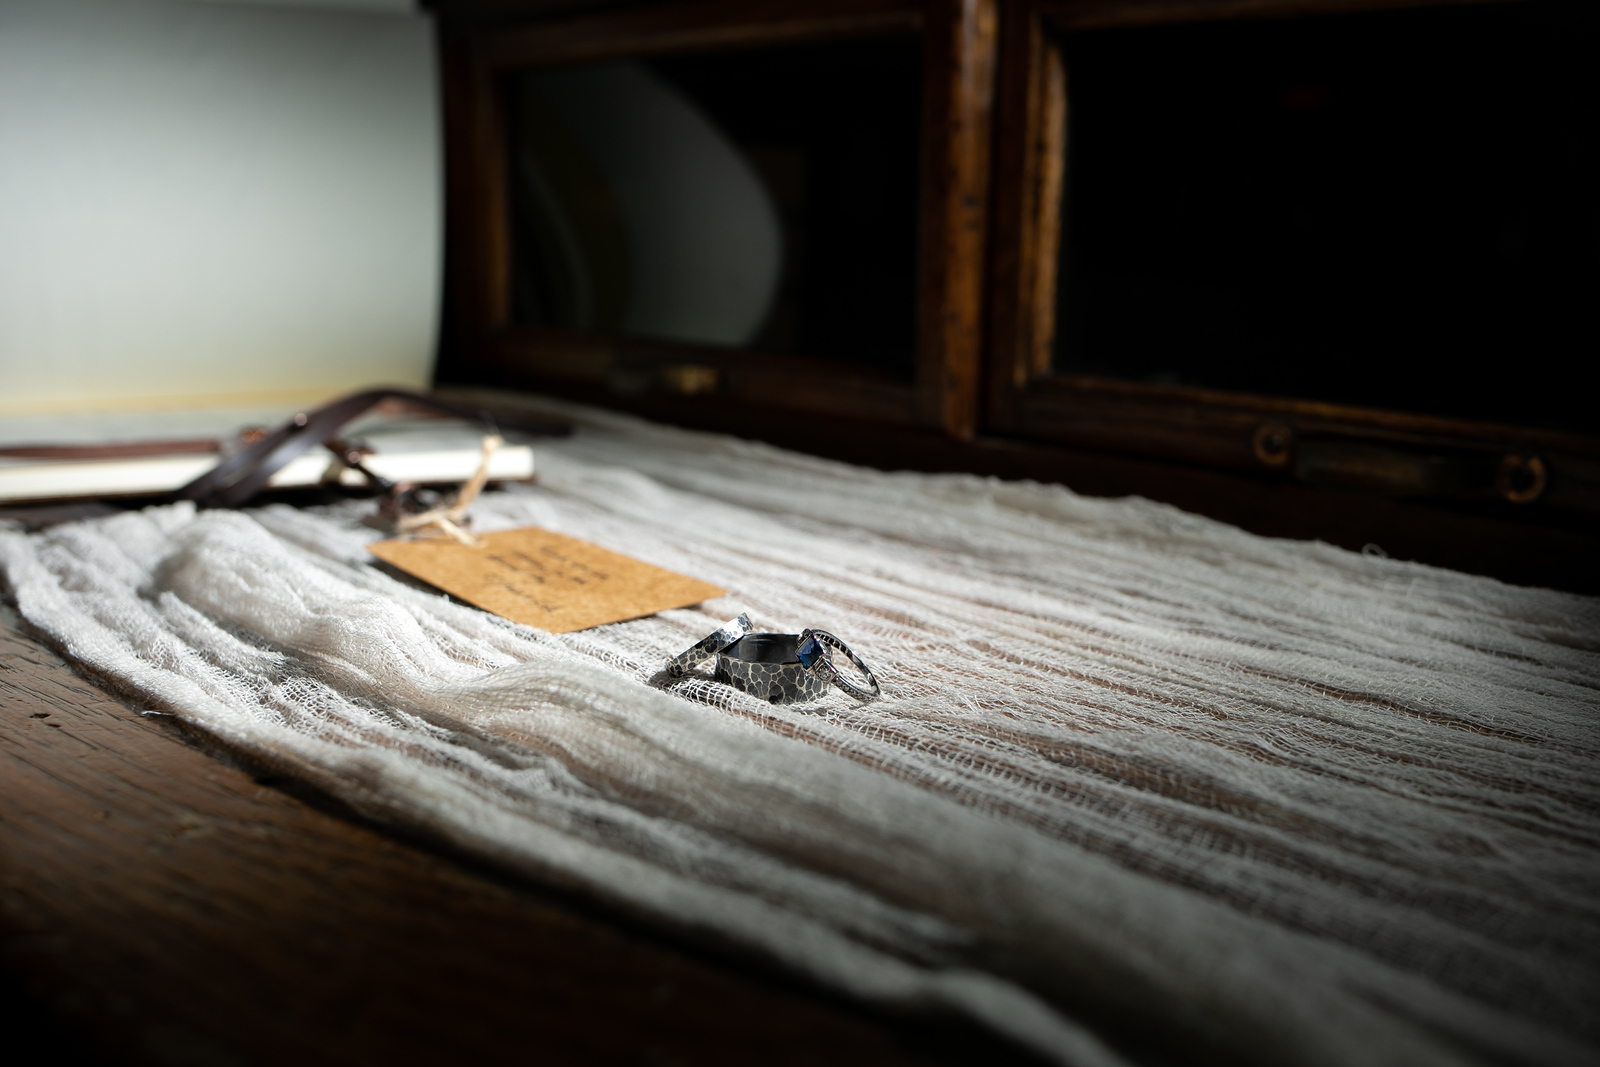 bride and groom's wedding rings witting on worn fabric next to a leather book